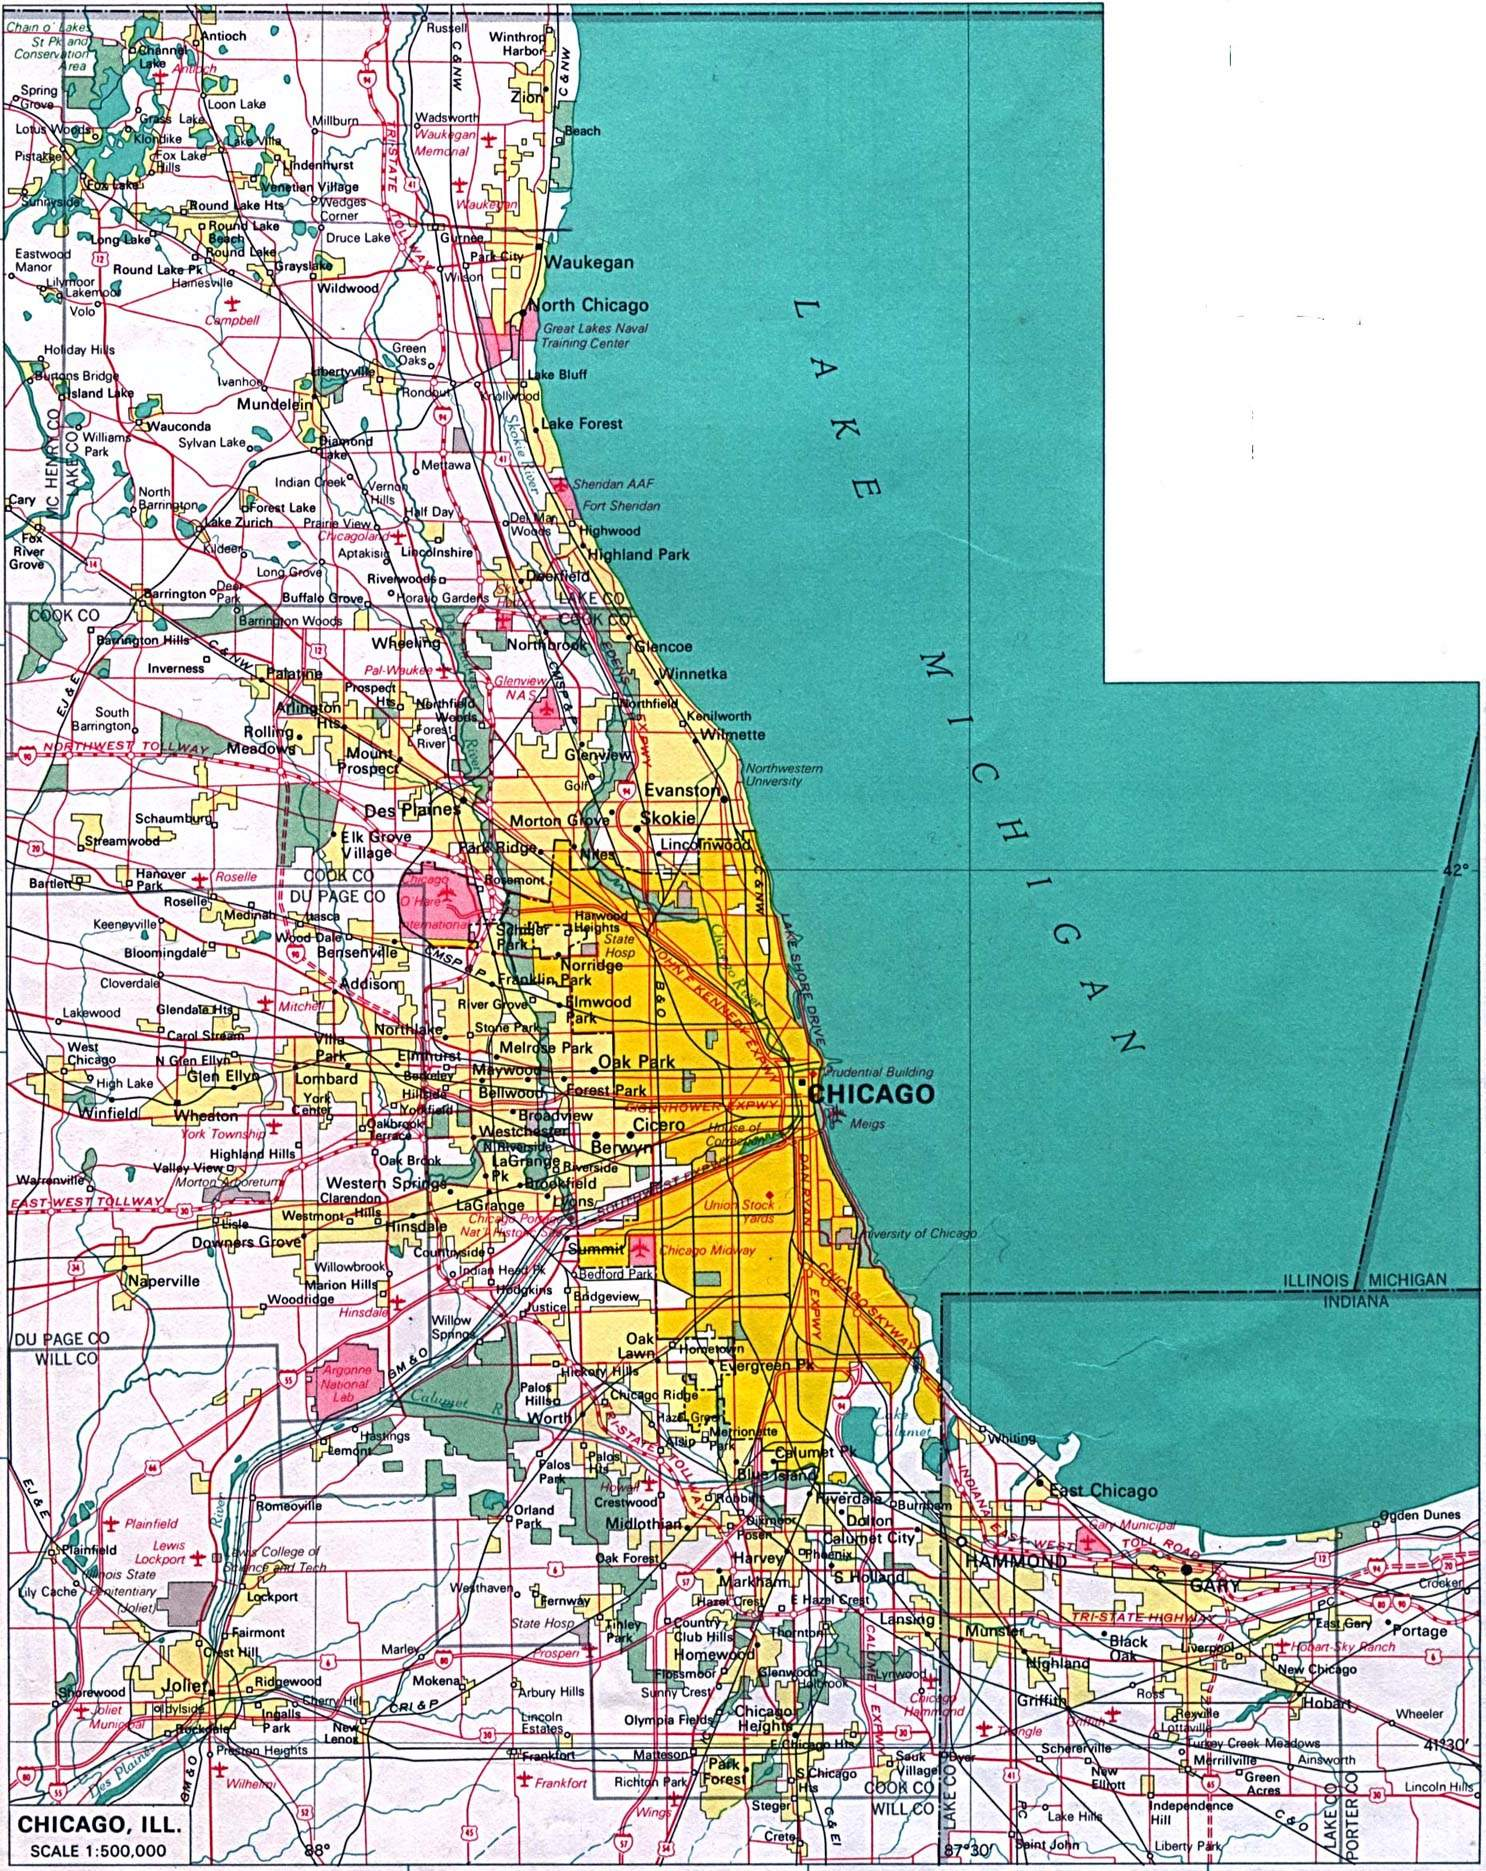 graphic about Printable Maps of Chicago titled Huge Chicago Maps for Totally free Down load and Print Large